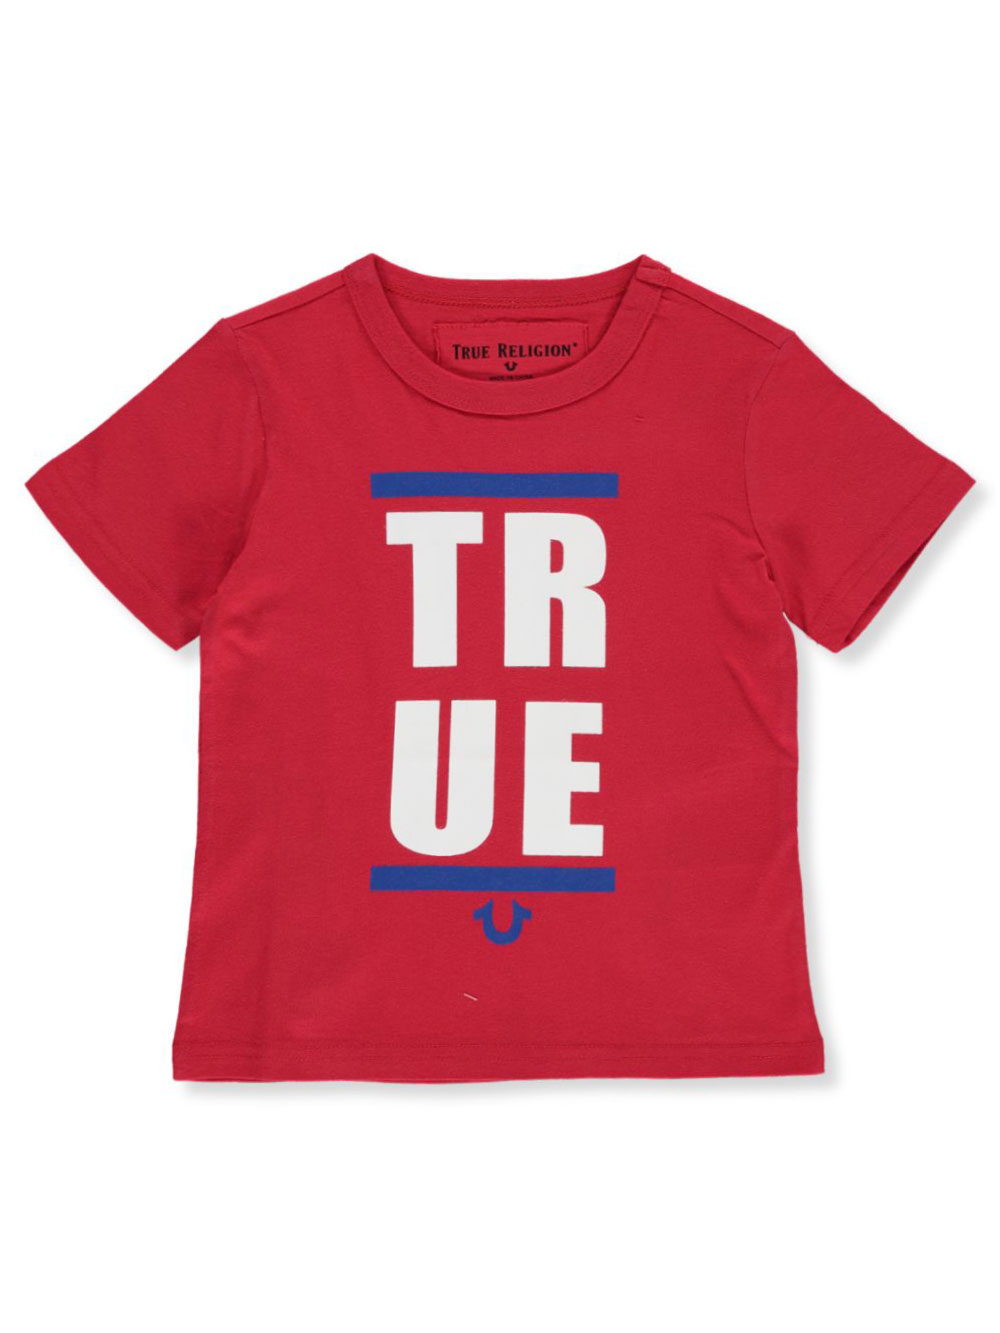 Red and Royal Blue T-Shirts